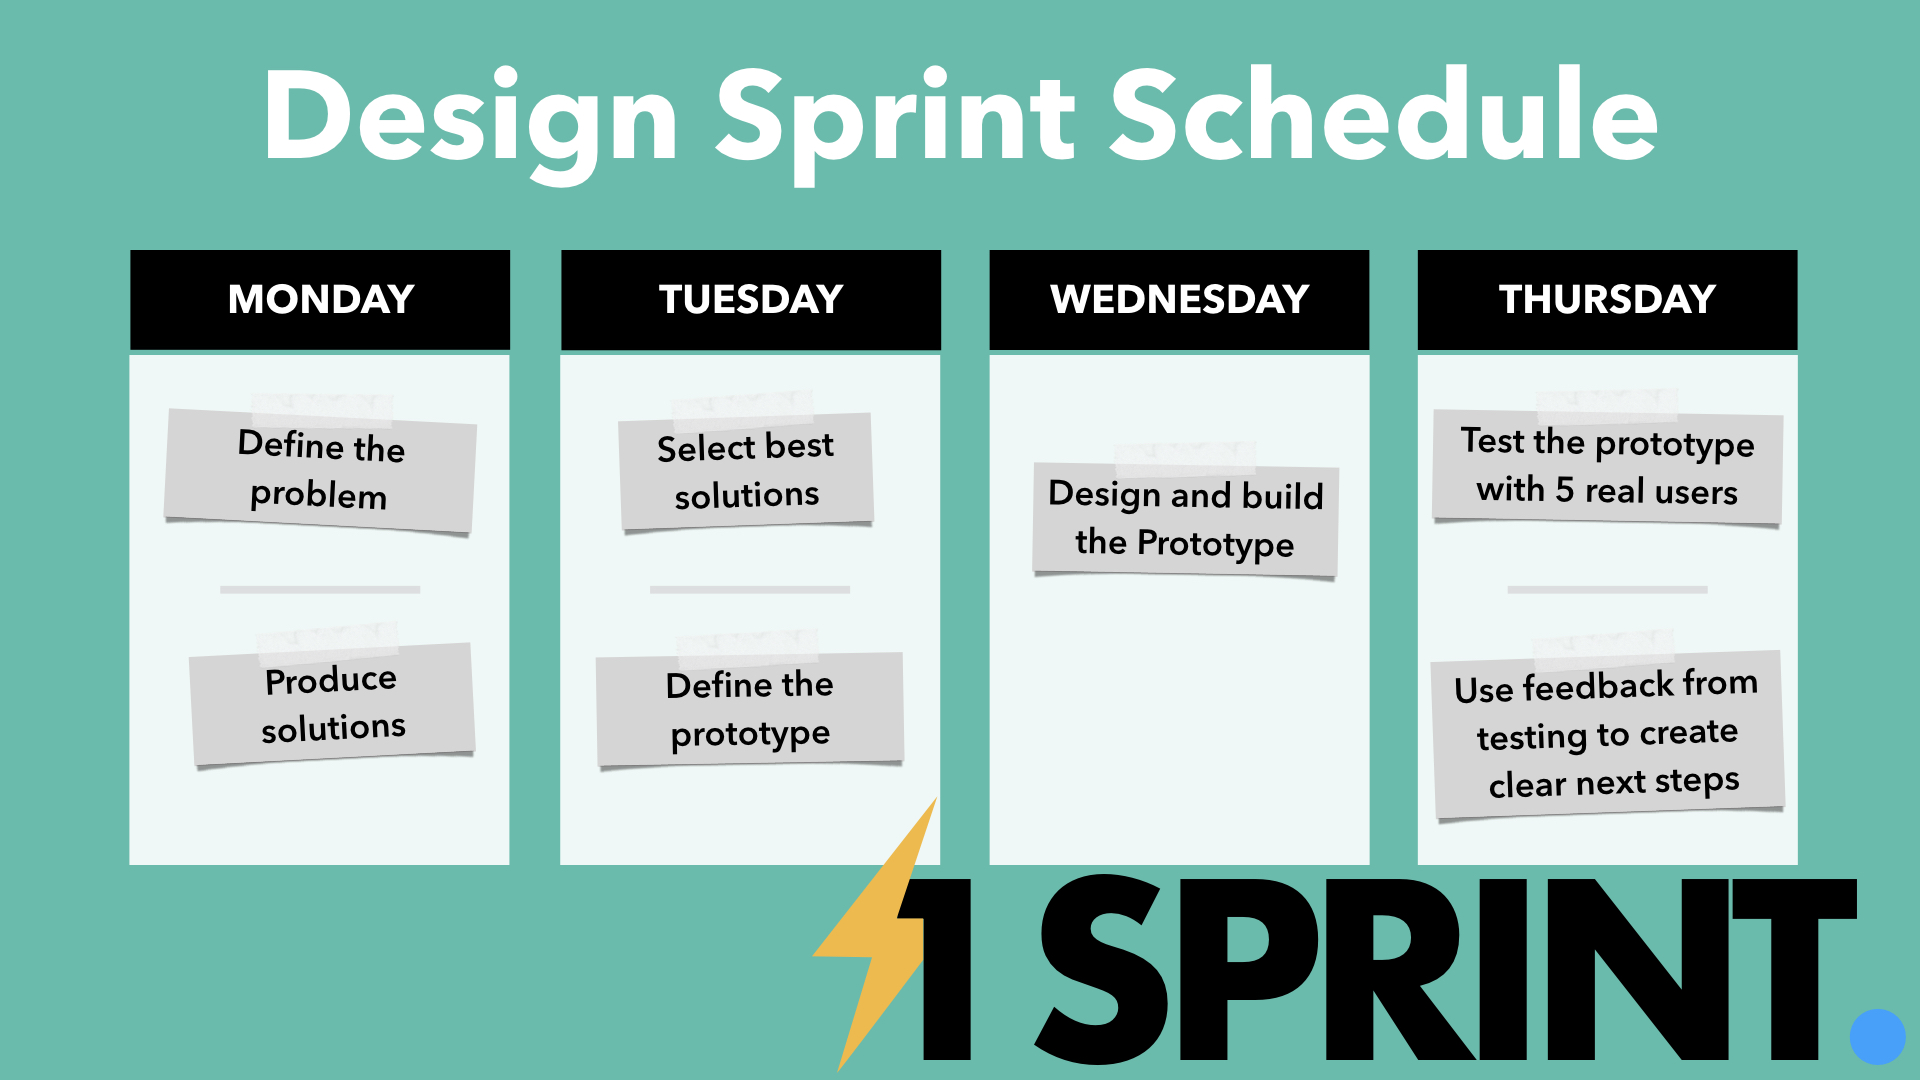 Agenda of a Design Sprint